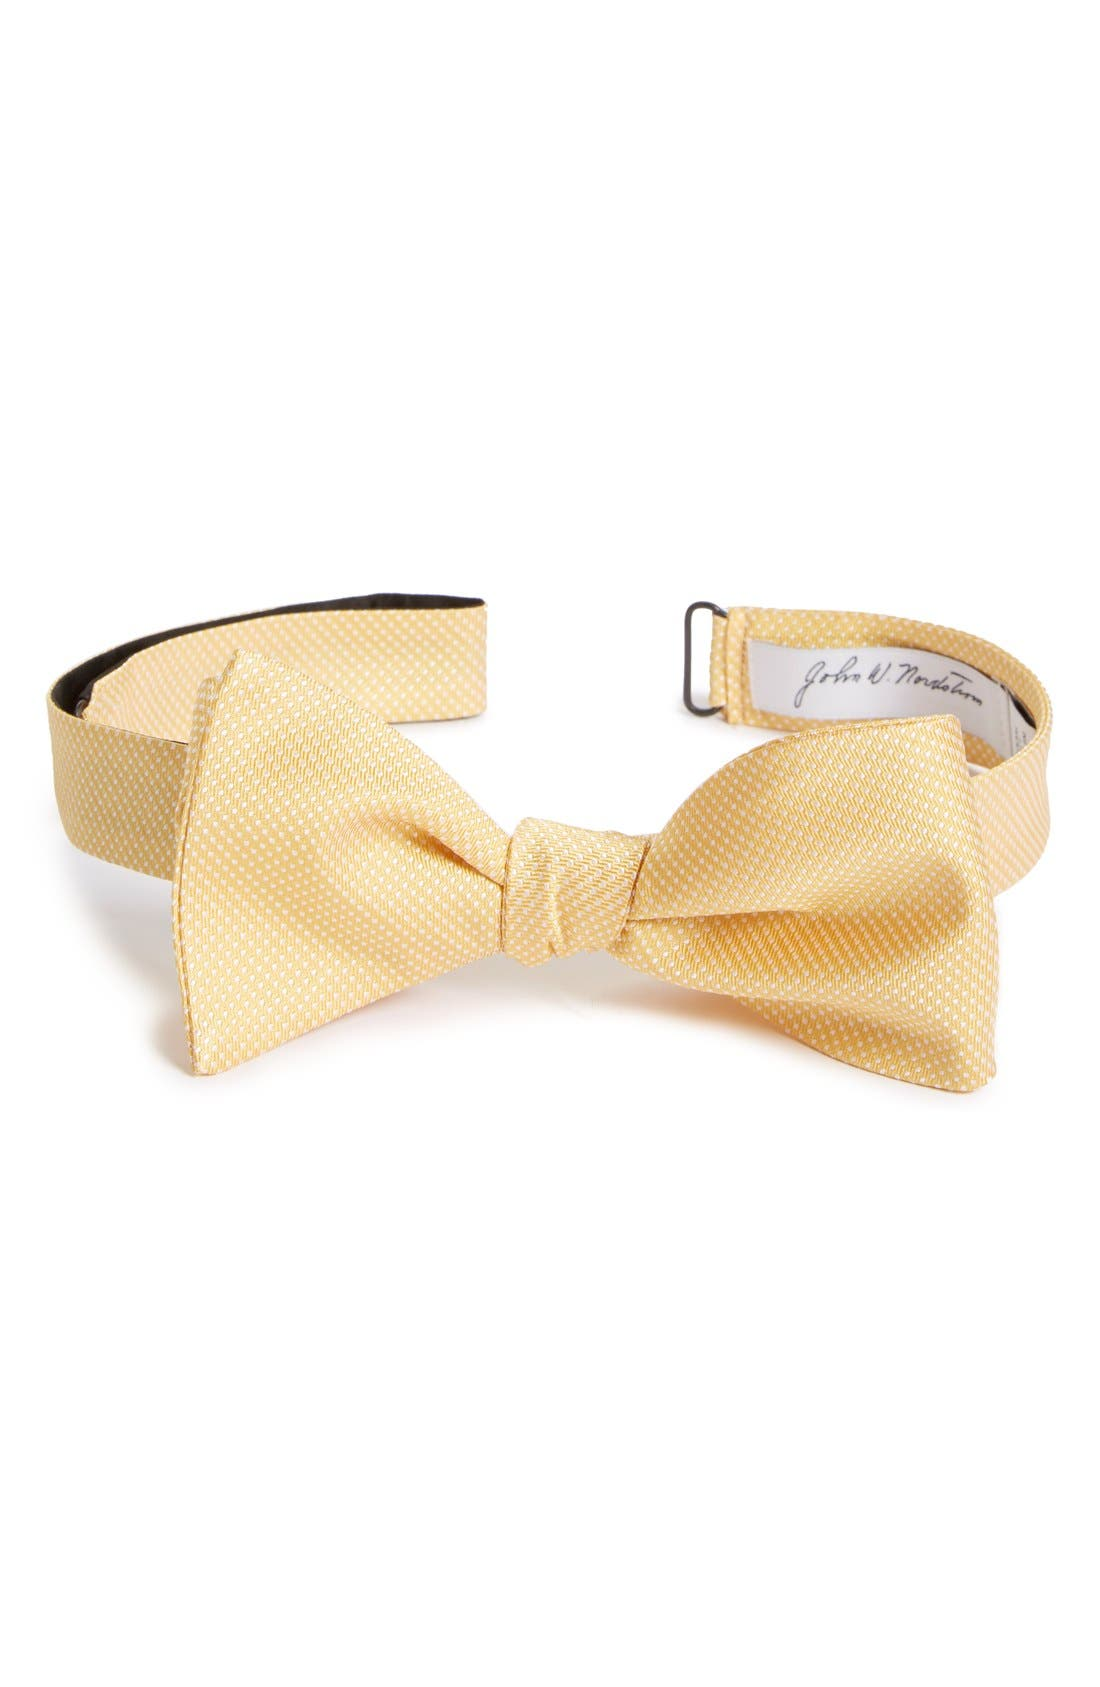 Dot Silk Bow Tie,                             Main thumbnail 1, color,